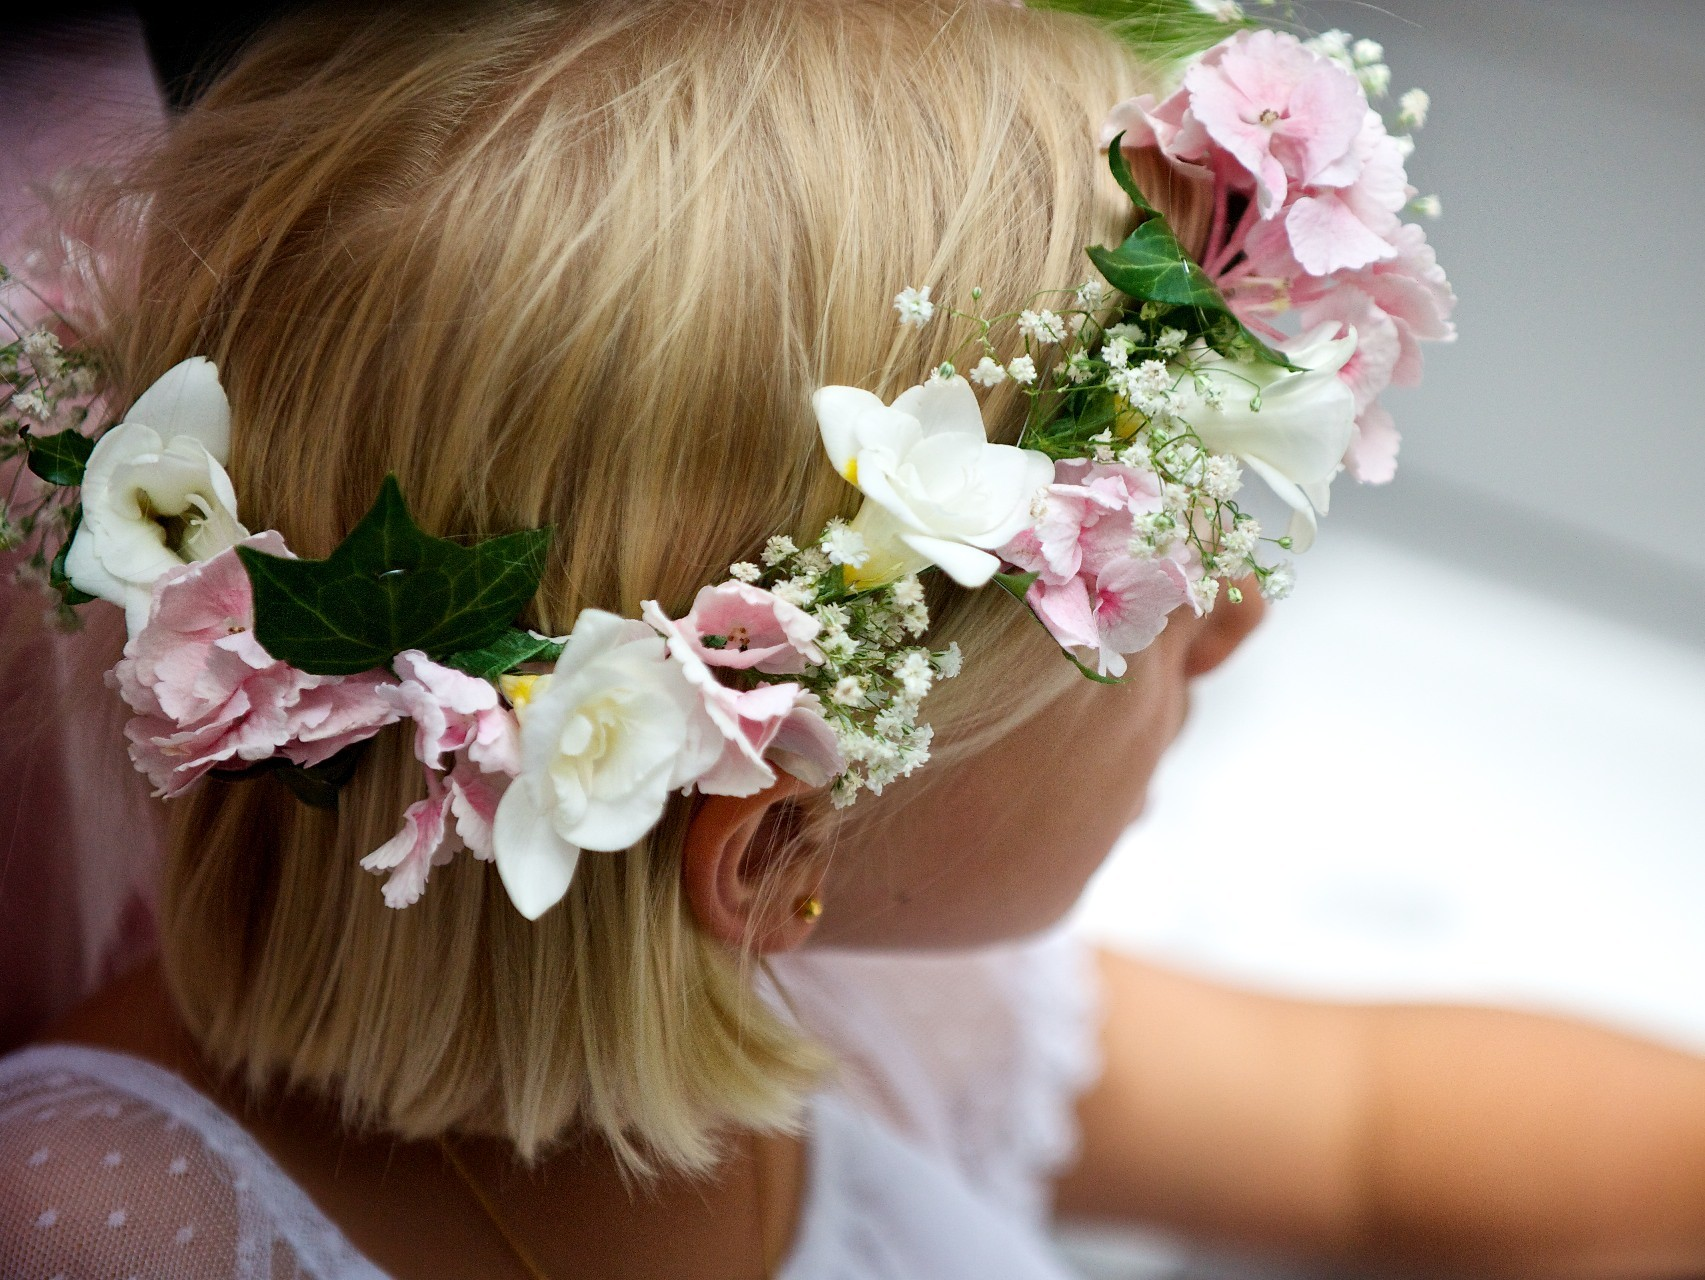 Flower Girl Ballymagarvey Village Wedding Meath